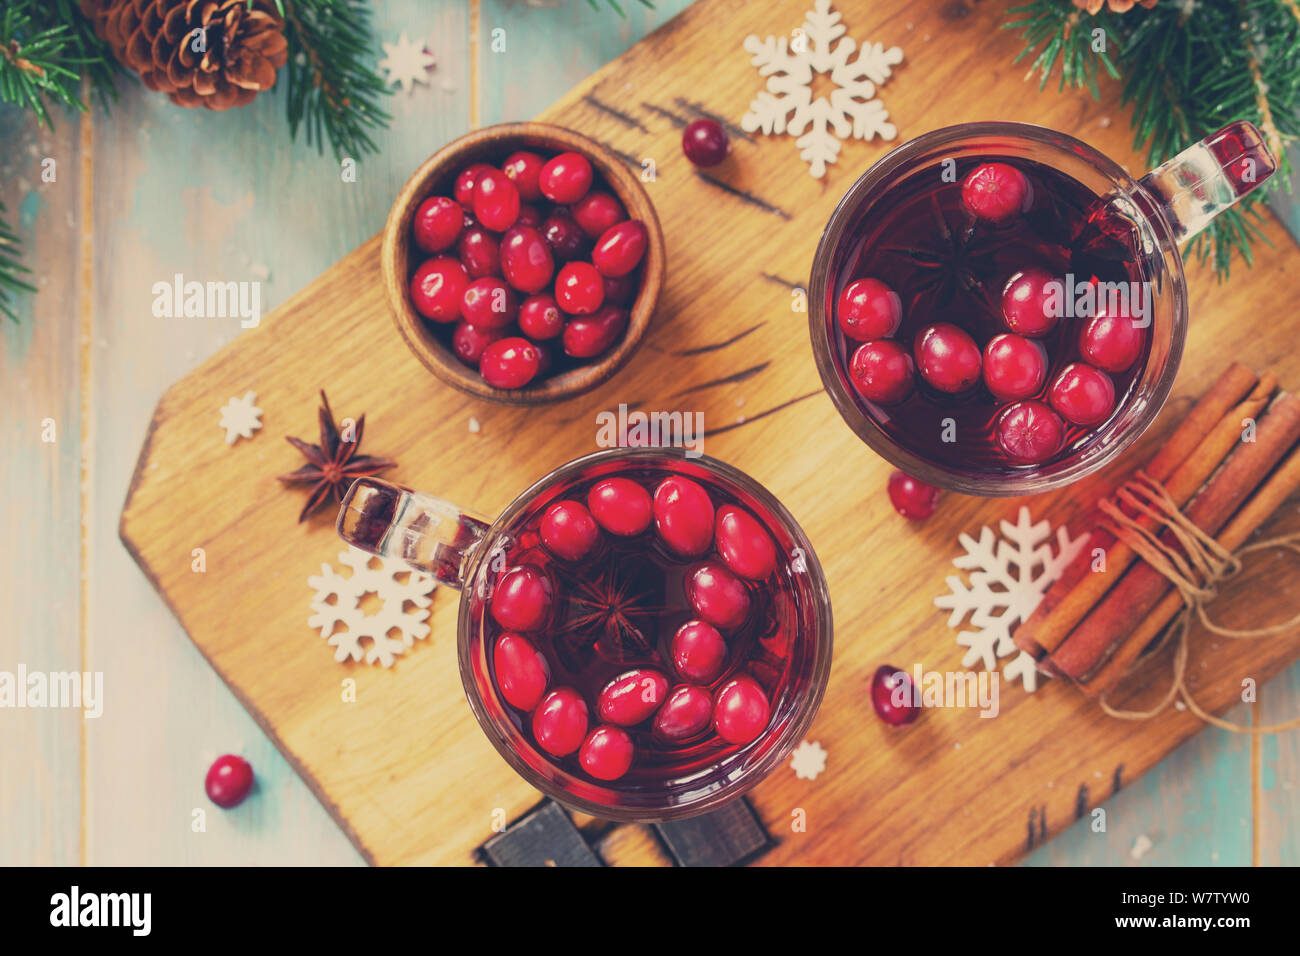 Christmas, Thanksgiving drinks. Hot winter drink with cranberries and cinnamon on wooden table. Top view flat lay. Toned image. Stock Photo